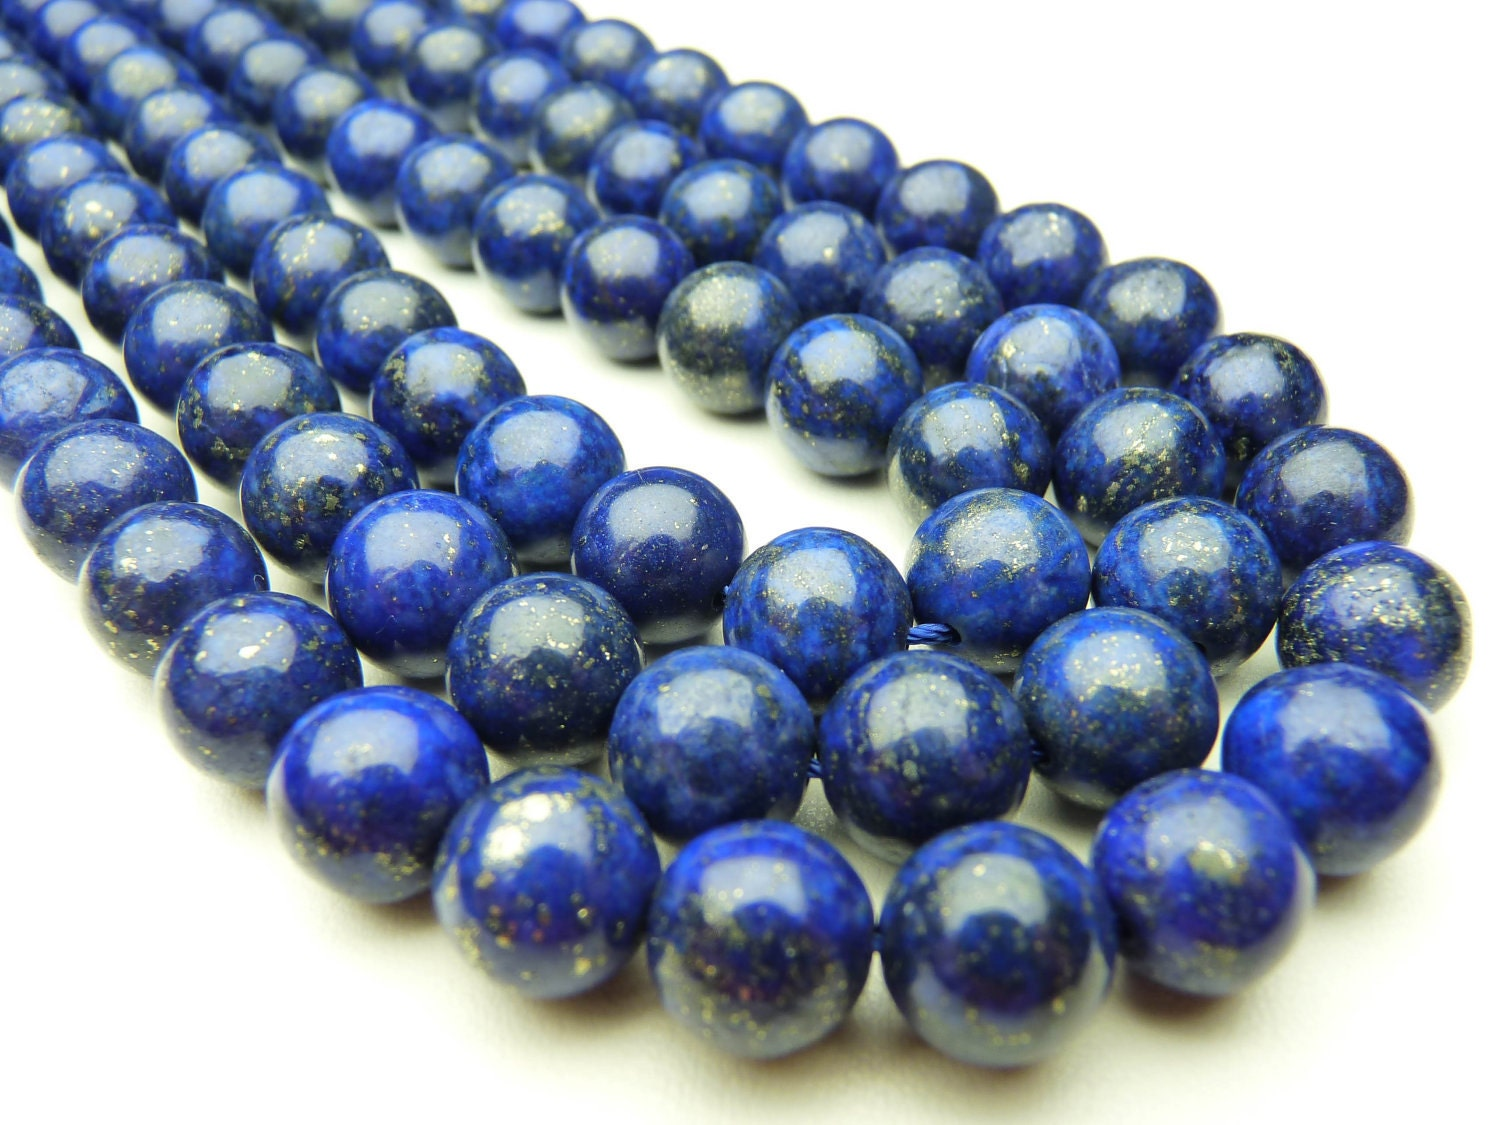 Lapis Lazuli Round Beads, 10 mm, 16 inches Strand